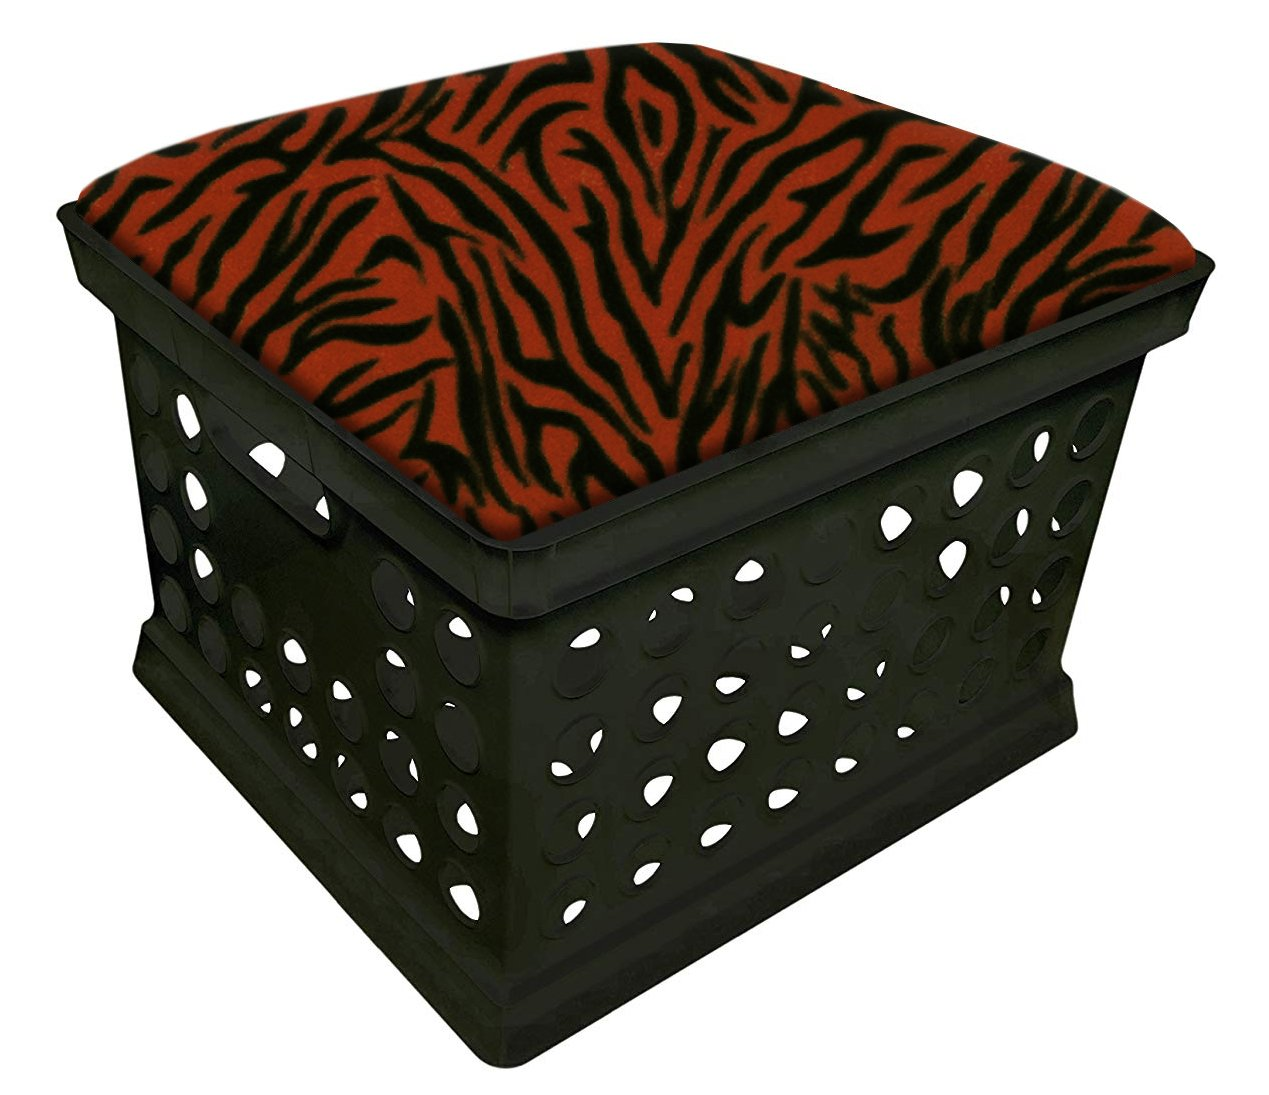 Black Utility Crate Storage Container Ottoman Bench Stool for Office/Home/School/Preschool with Your Choice of a Colorful Zebra Pattern Fleece and a Free Flashlight! (Orange)